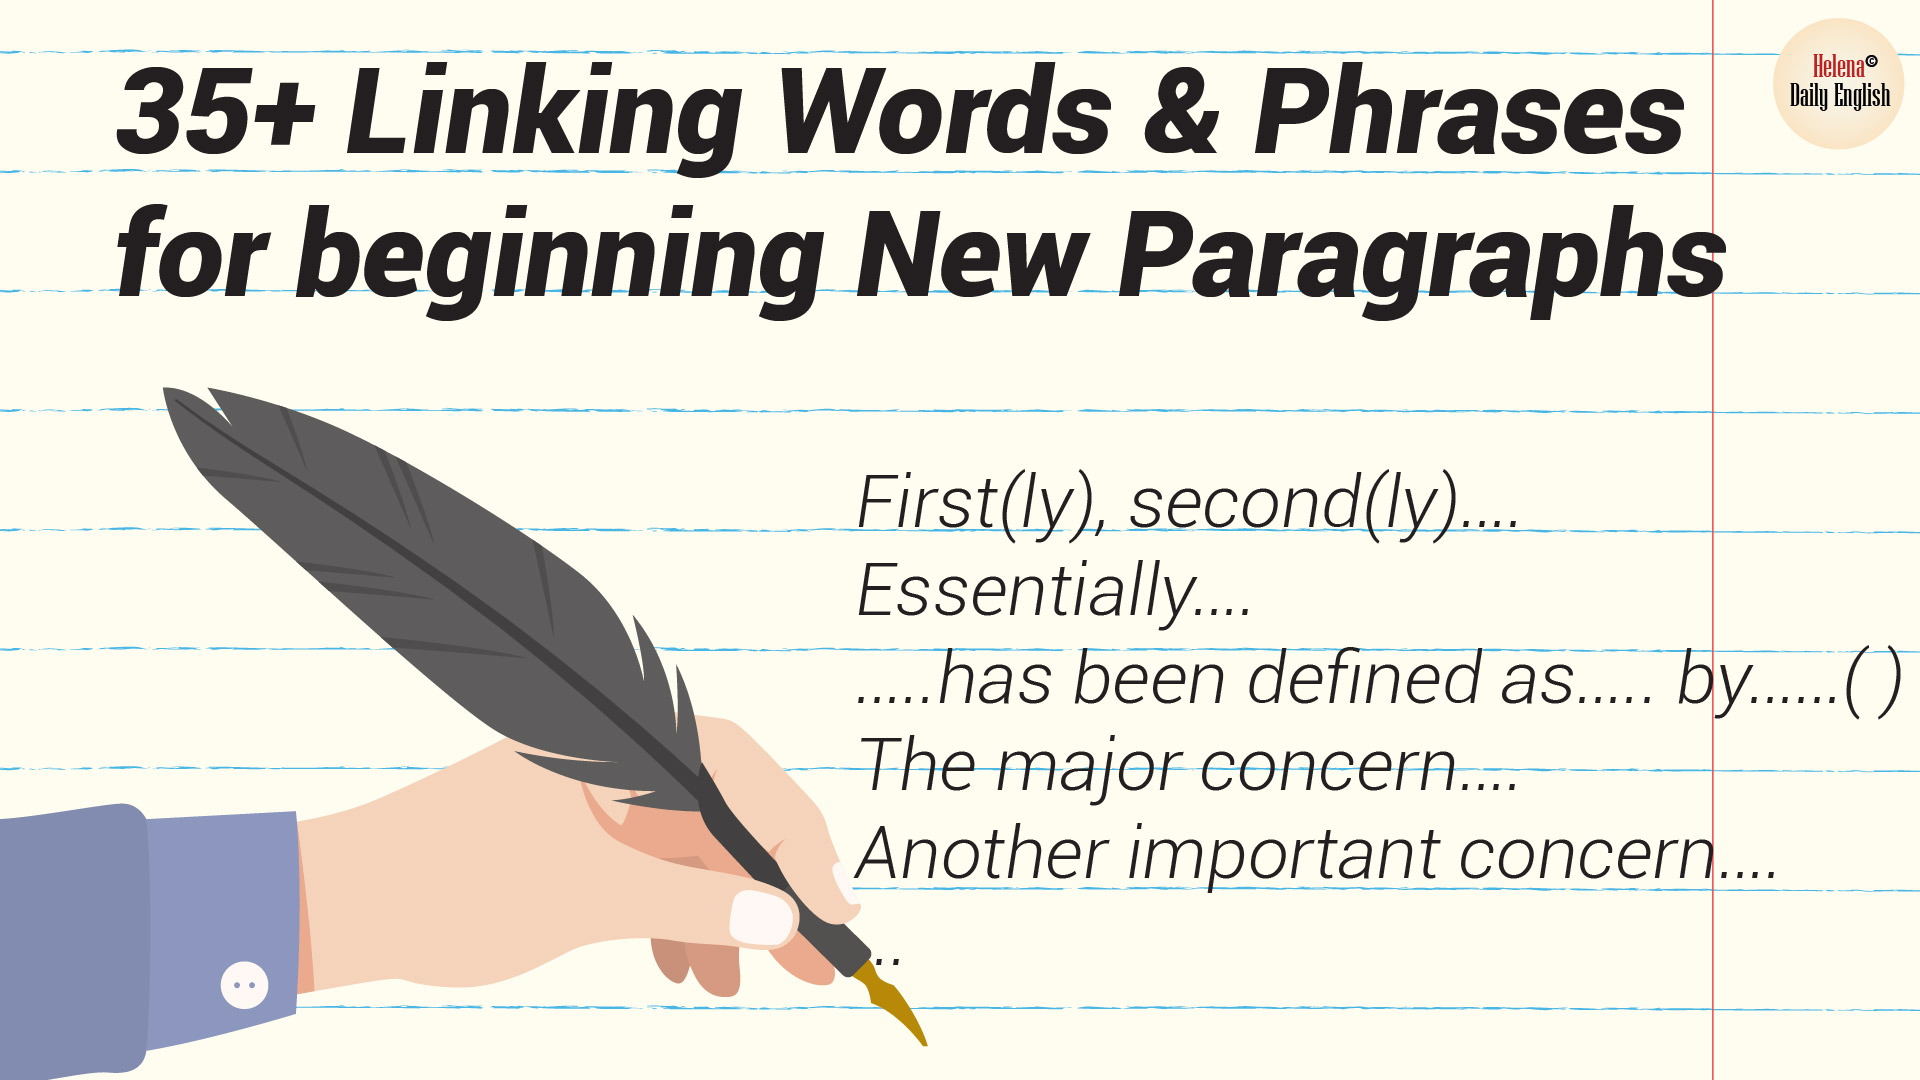 Top 35 Linking Words And Phrases For Beginning New Paragraphs